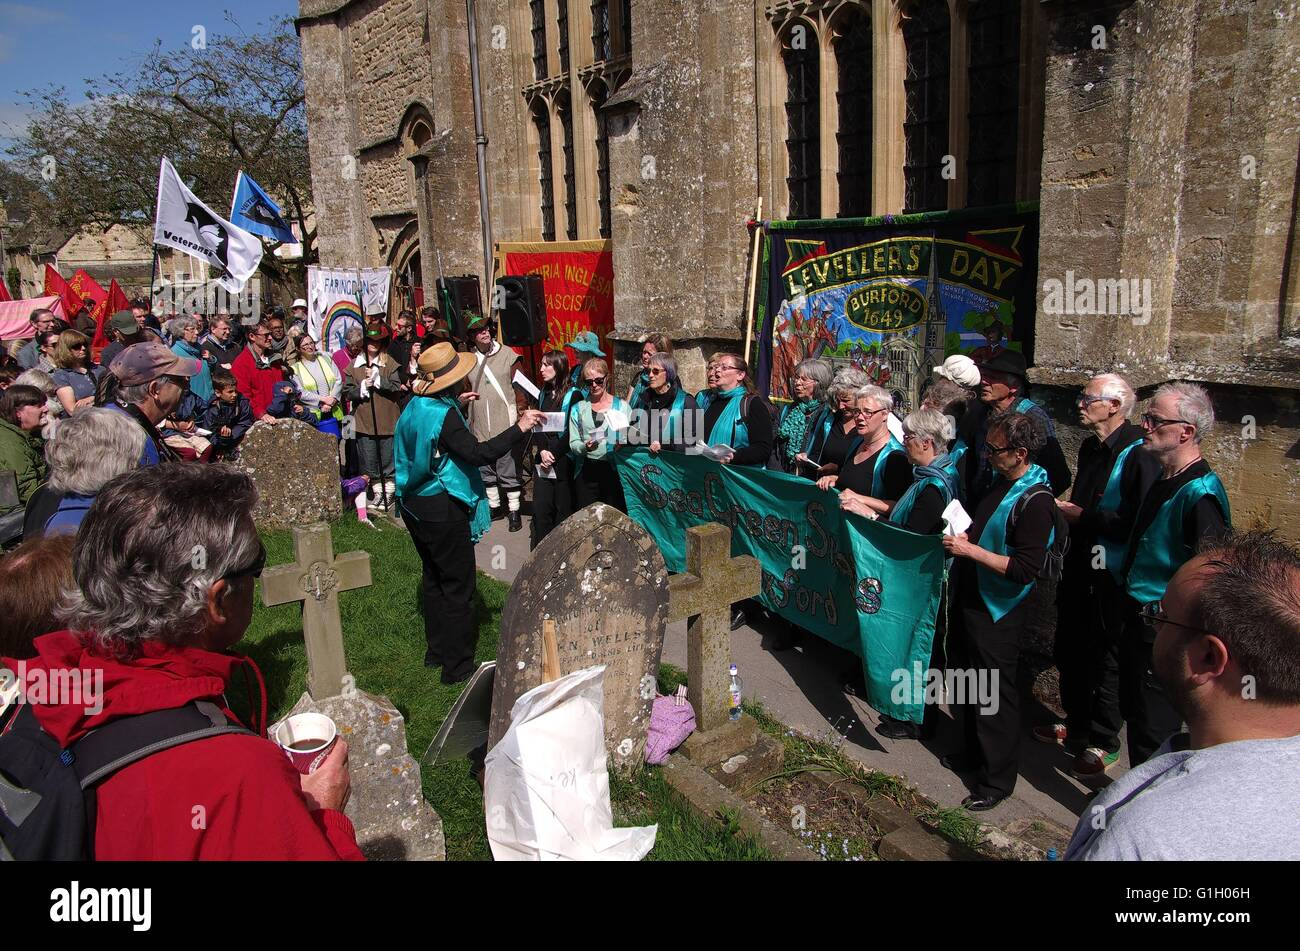 Levellers Day in Burdord. With the Levellers in the New Model Army demanding a say in a new writing constitution, - Stock Image